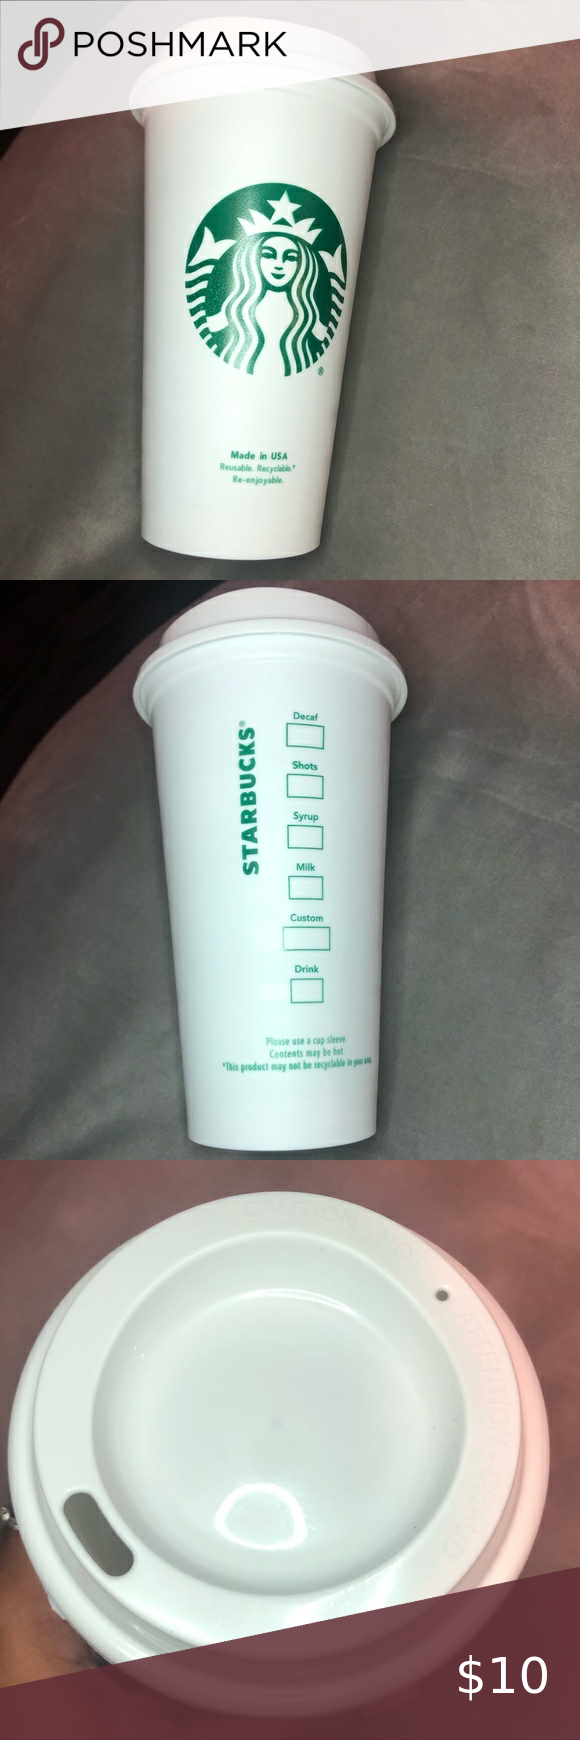 Starbucks Reusable Hot Cup in 2020 To go coffee cups